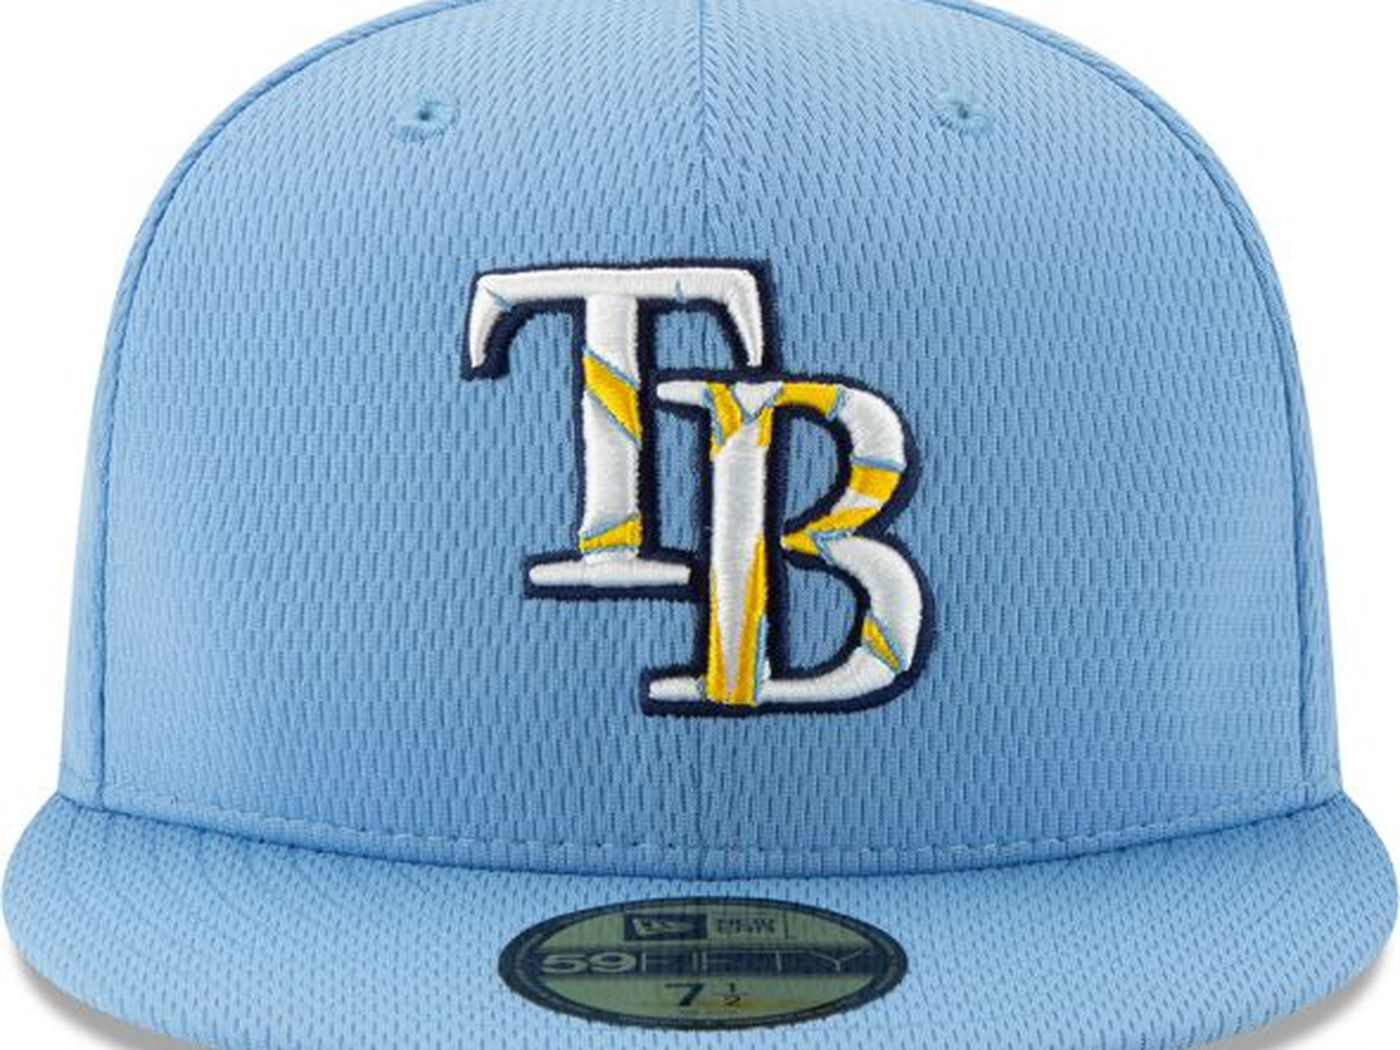 The Rays 2020 Batting Practice Caps Are Here Draysbay